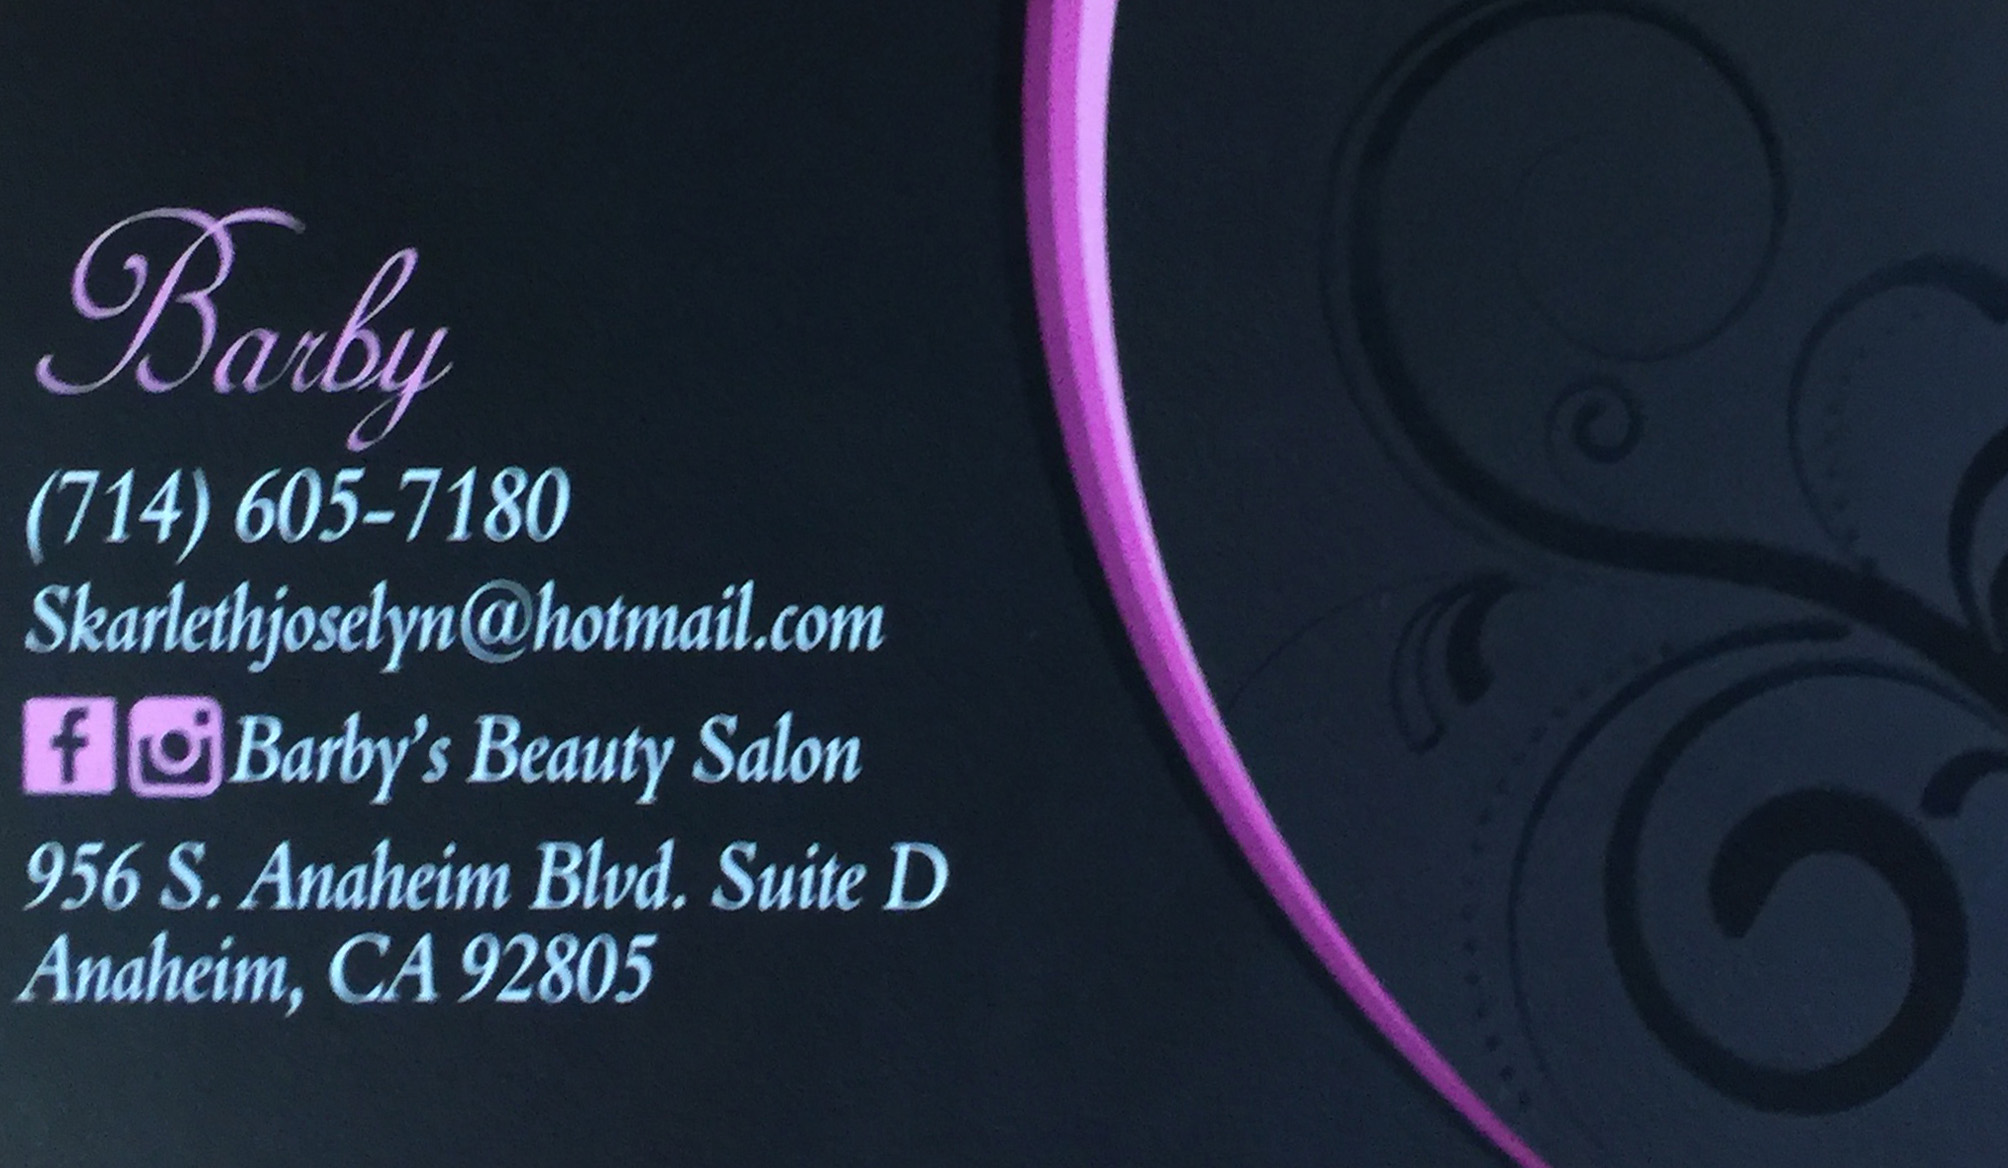 Barby Salon